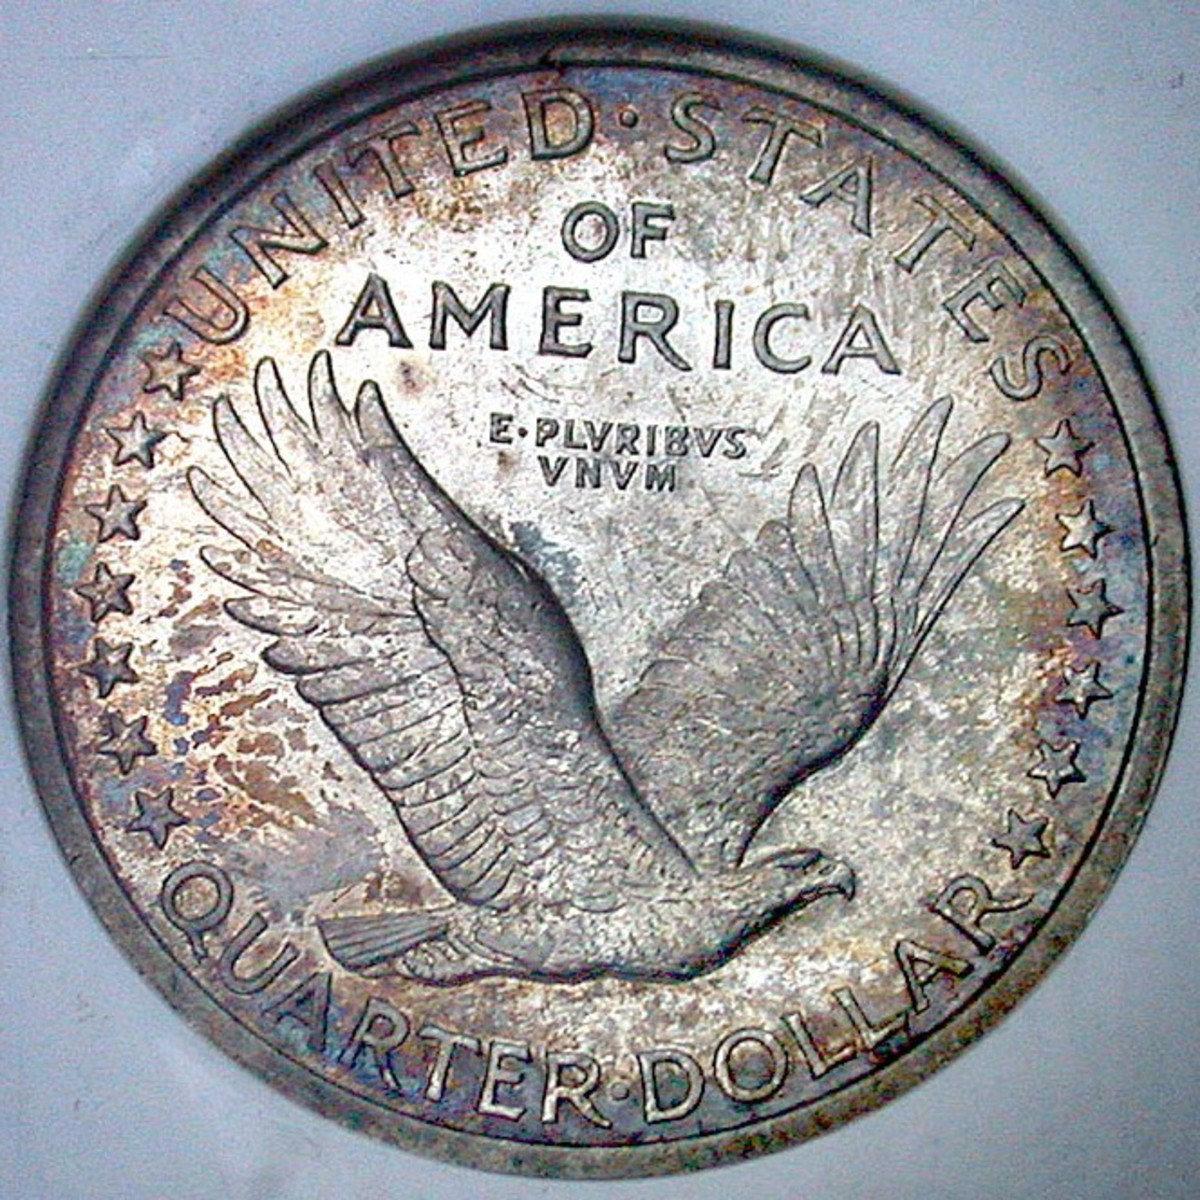 1917 Standing Liberty Quarter Reverse. Variety 1 w/o stars under the Eagle.